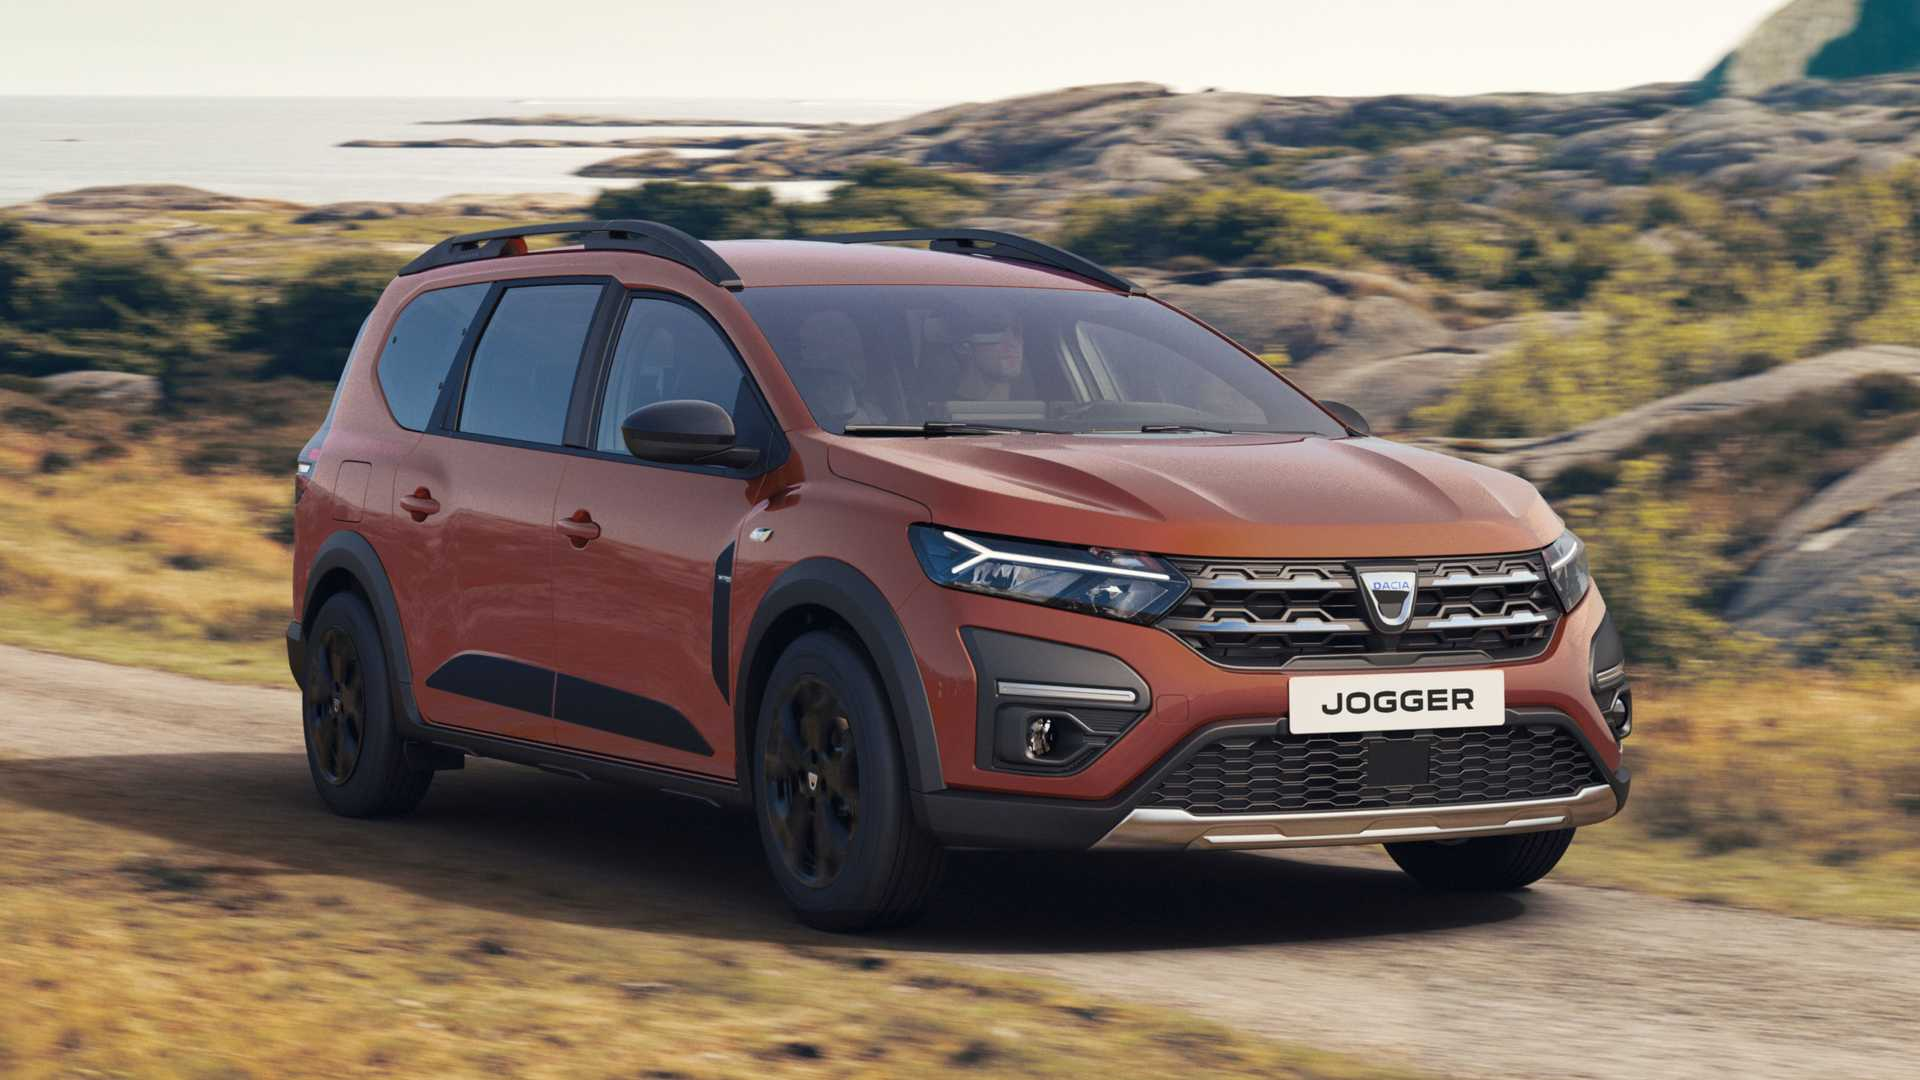 The all-new Dacia Jogger will be available to pre-order in five- and seven-seat variants starting in November, although prices remain unannounced and the production won't start until February 2022.